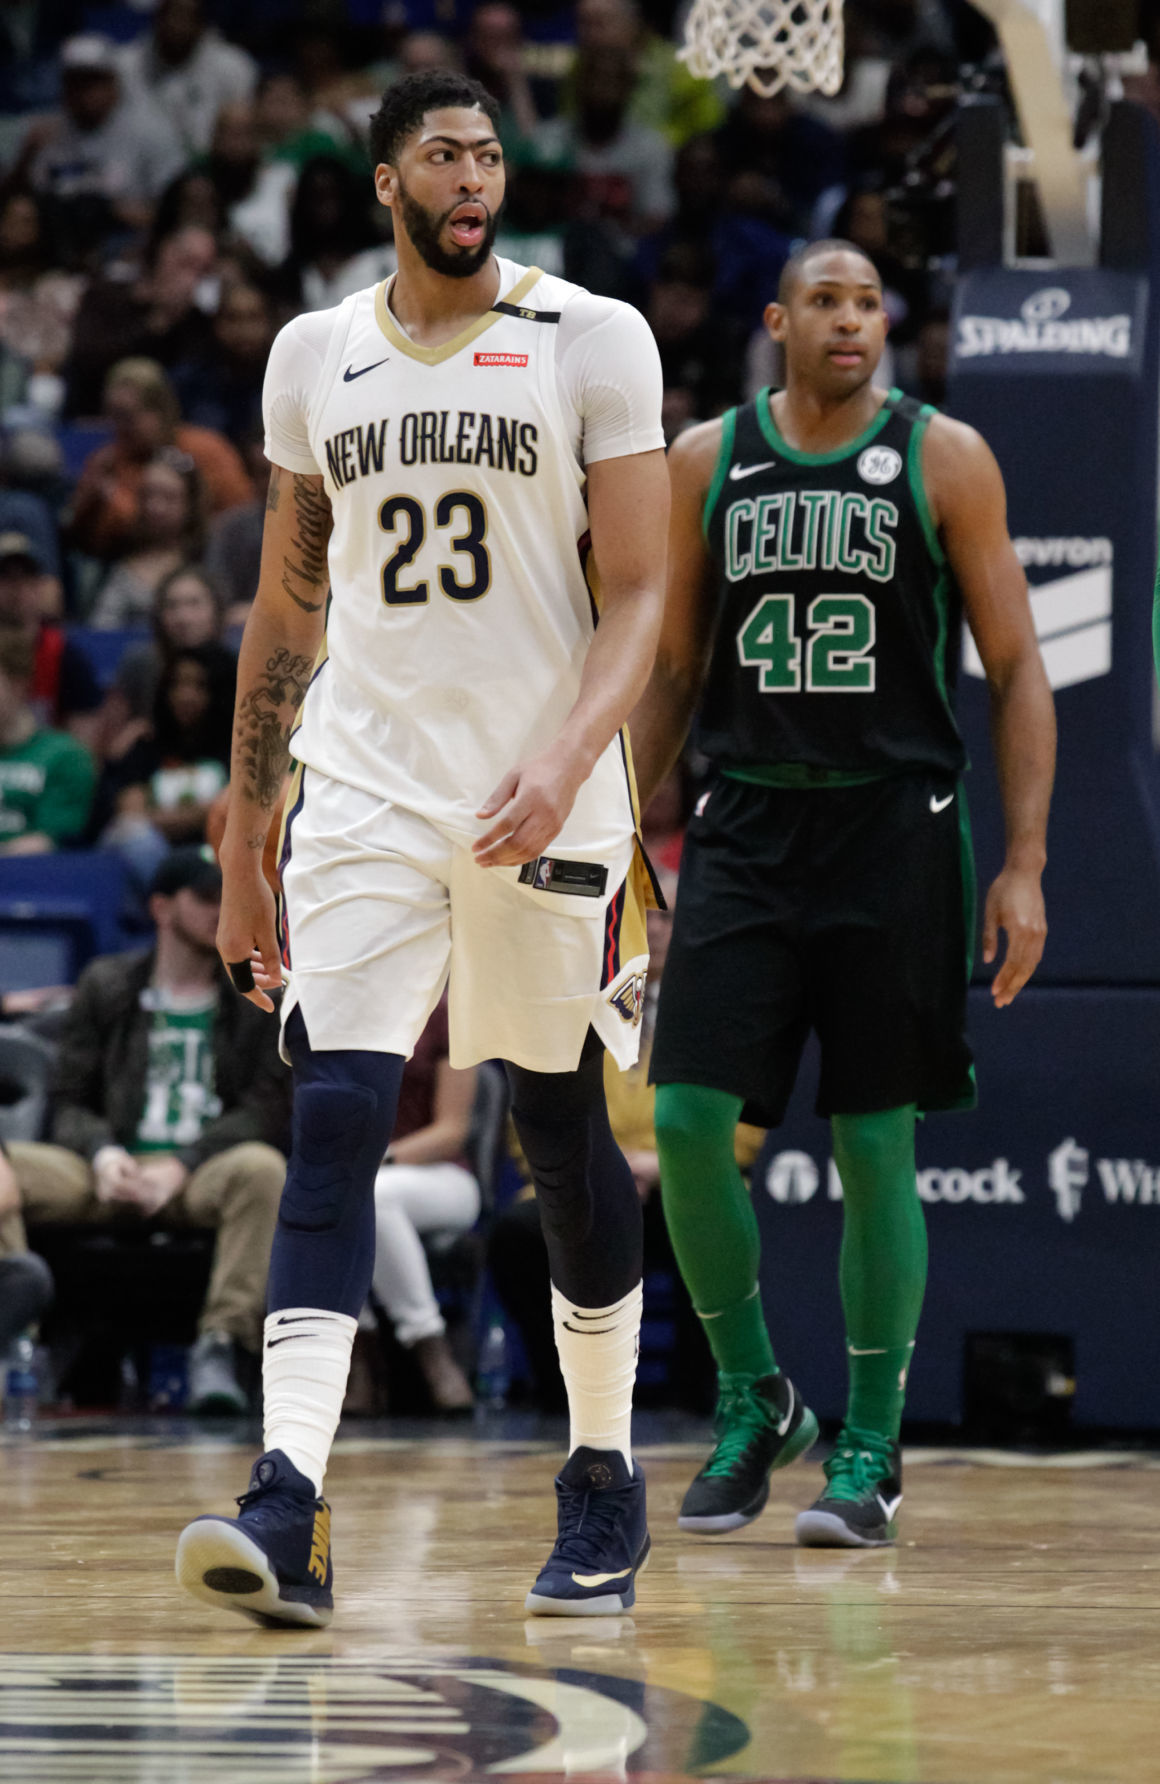 sports shoes 5f616 820b4 Kushner: As Celtics lose, so do the Pelicans; Anthony Davis ...